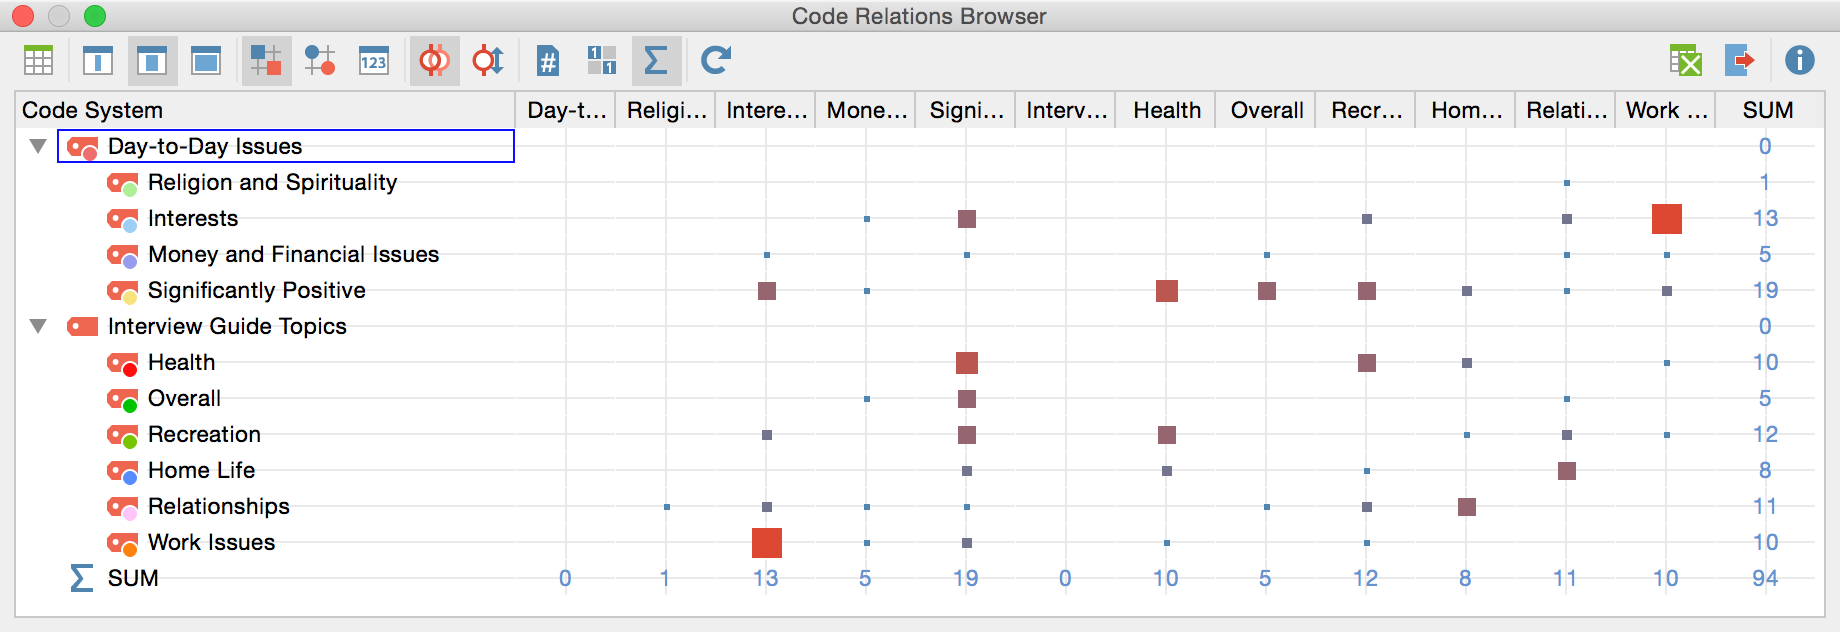 An example of the Code Relations Browser visualization